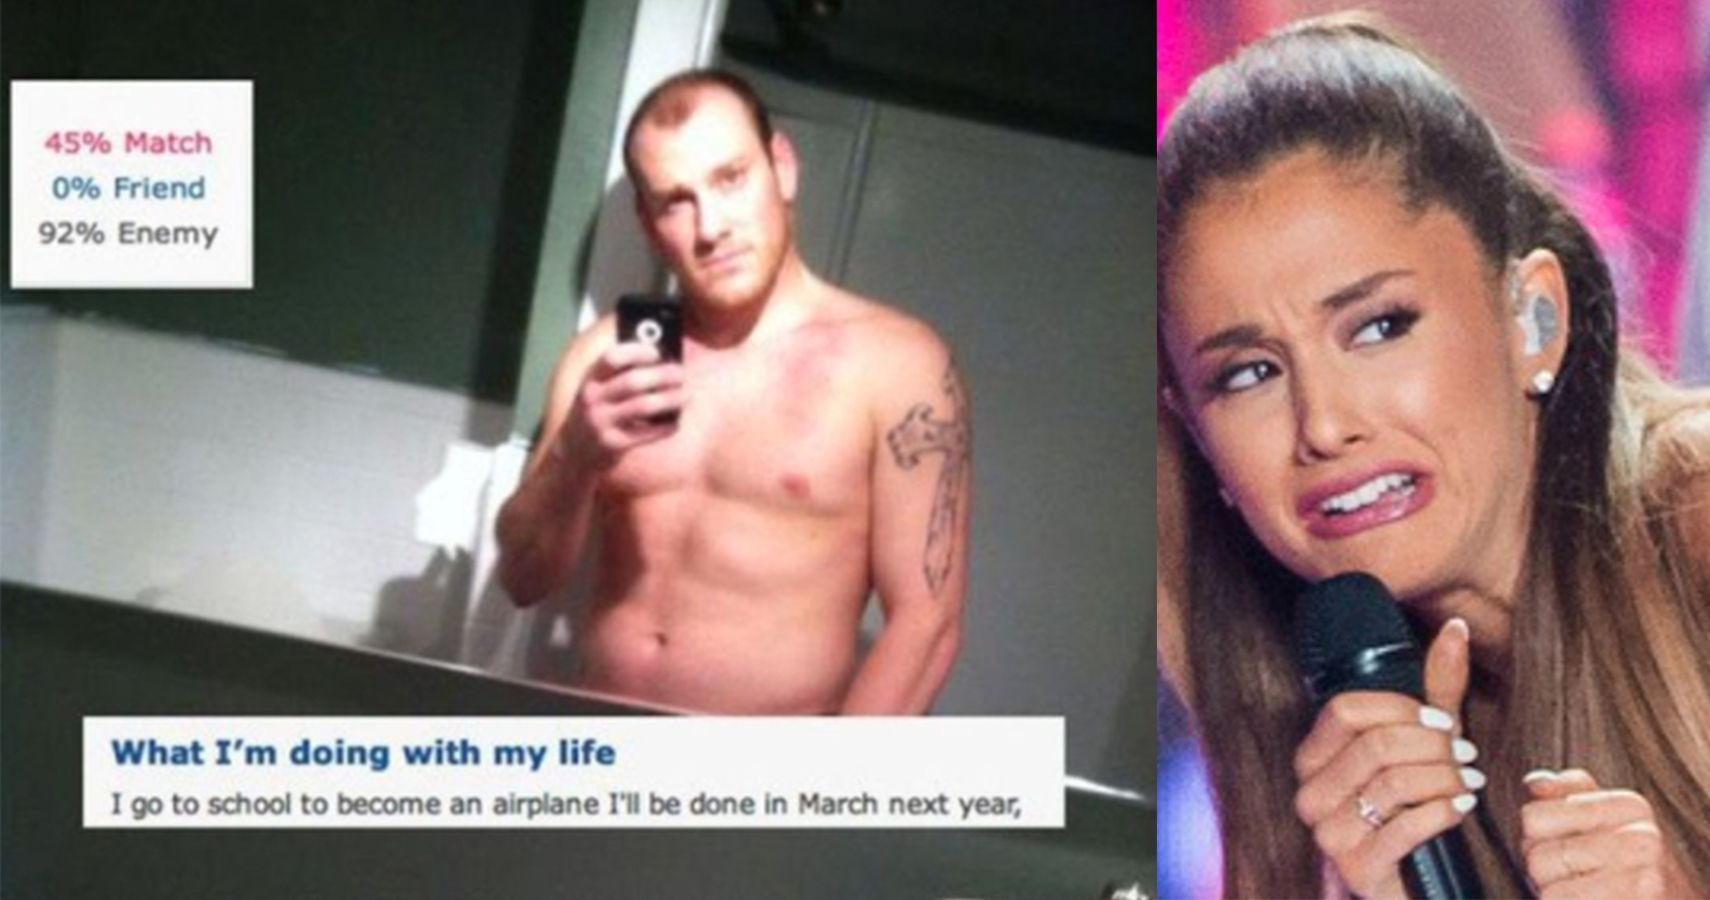 You Think The World Is Cruel Mean And Harsh Take A Look: 15 Awful Dating Profiles That Will Scar You For Life